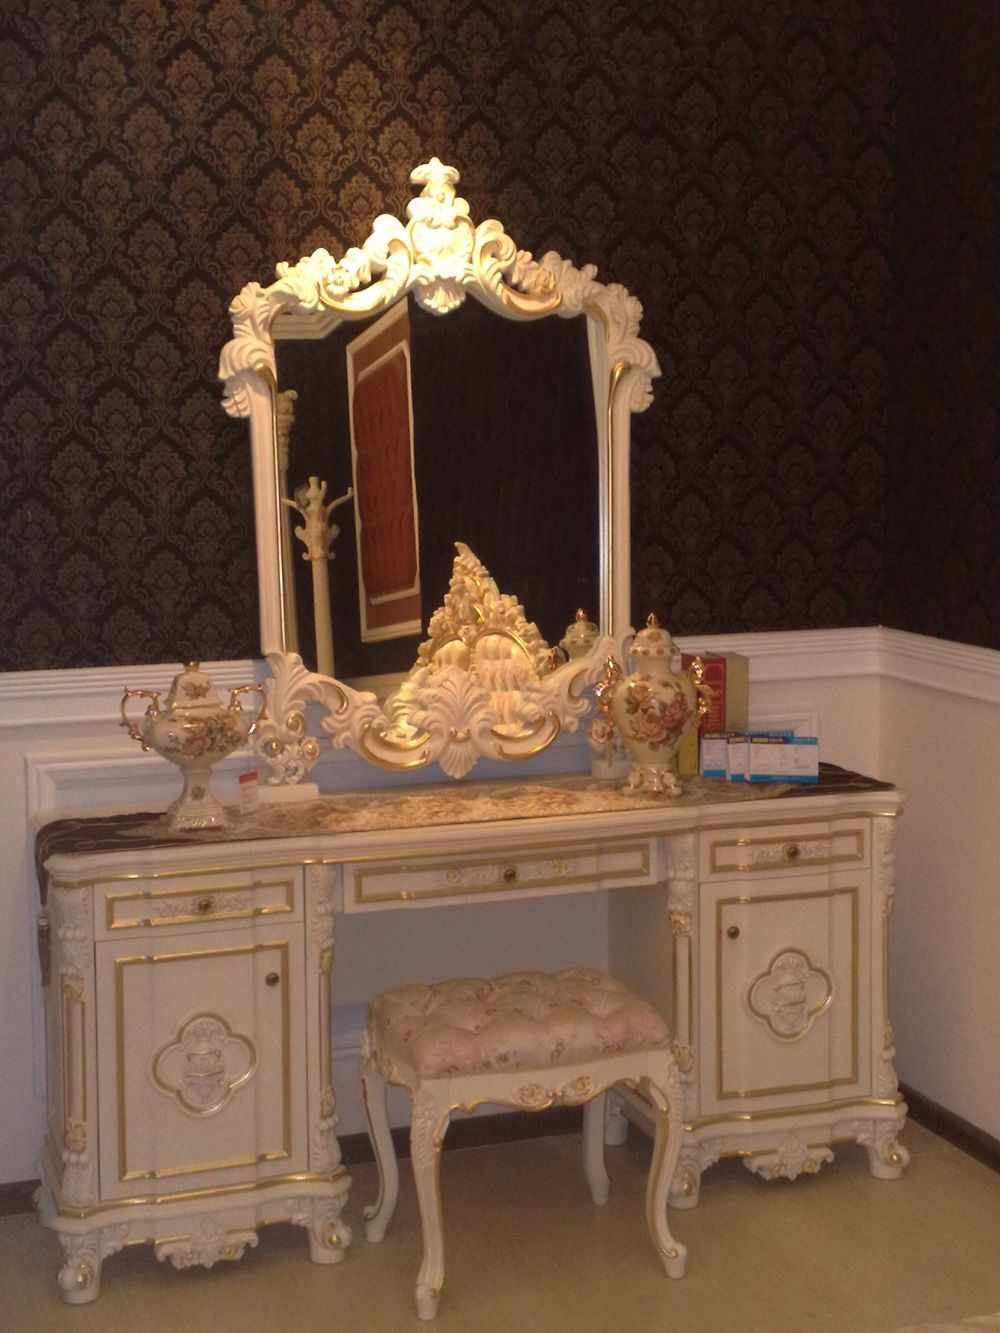 Bedroom dressing table decorating ideas - China Dressing Table Bedroom Furniture Design Ideas Styles